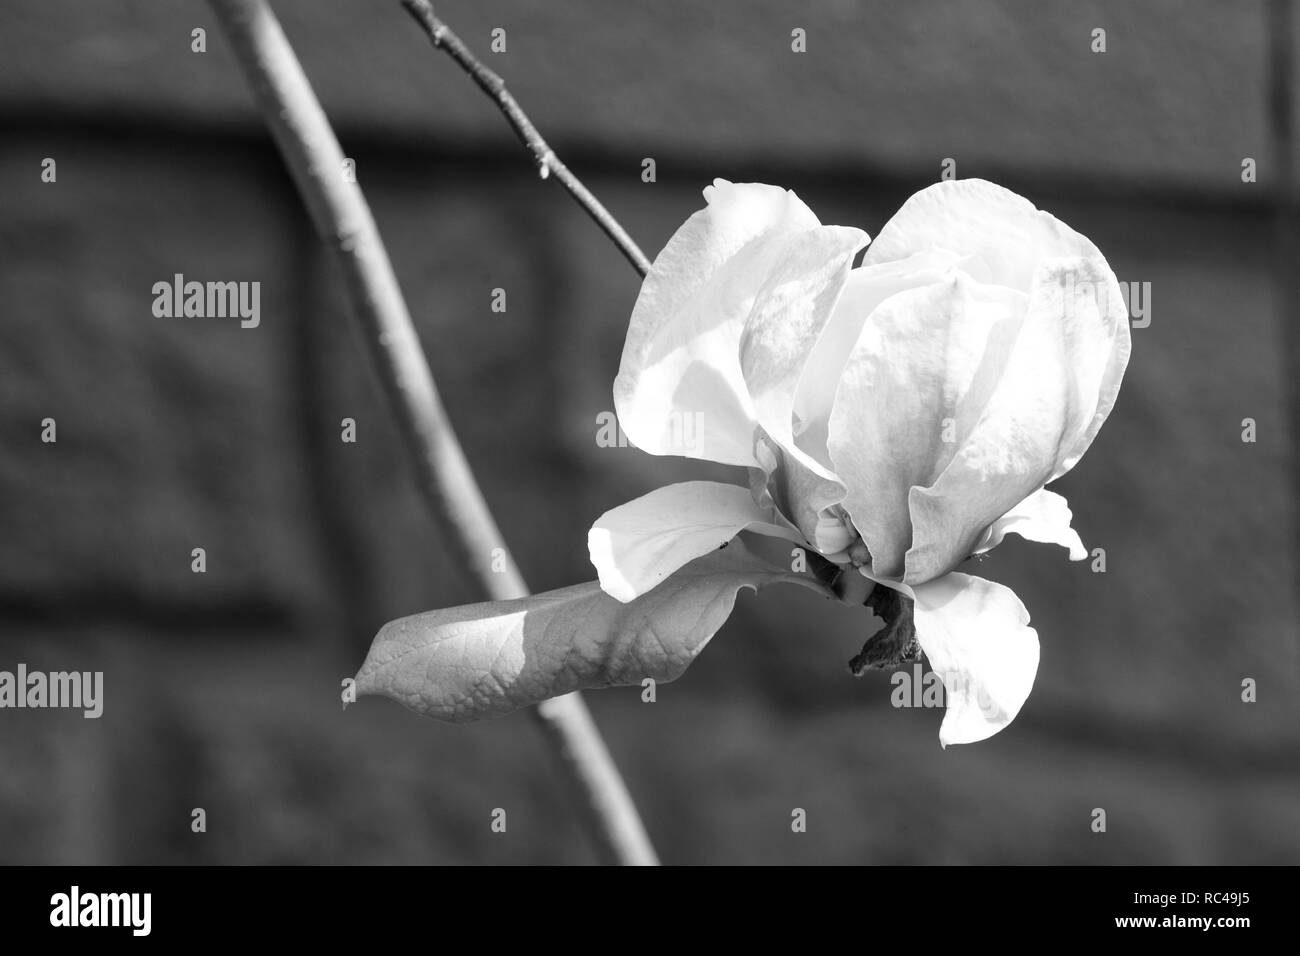 Magnolia flower blossoming on twig on sunny day. Bloom, blossom, flowering. Spring season concept. Tenderness, fragrance, freshness. Nature beauty environment - Stock Image